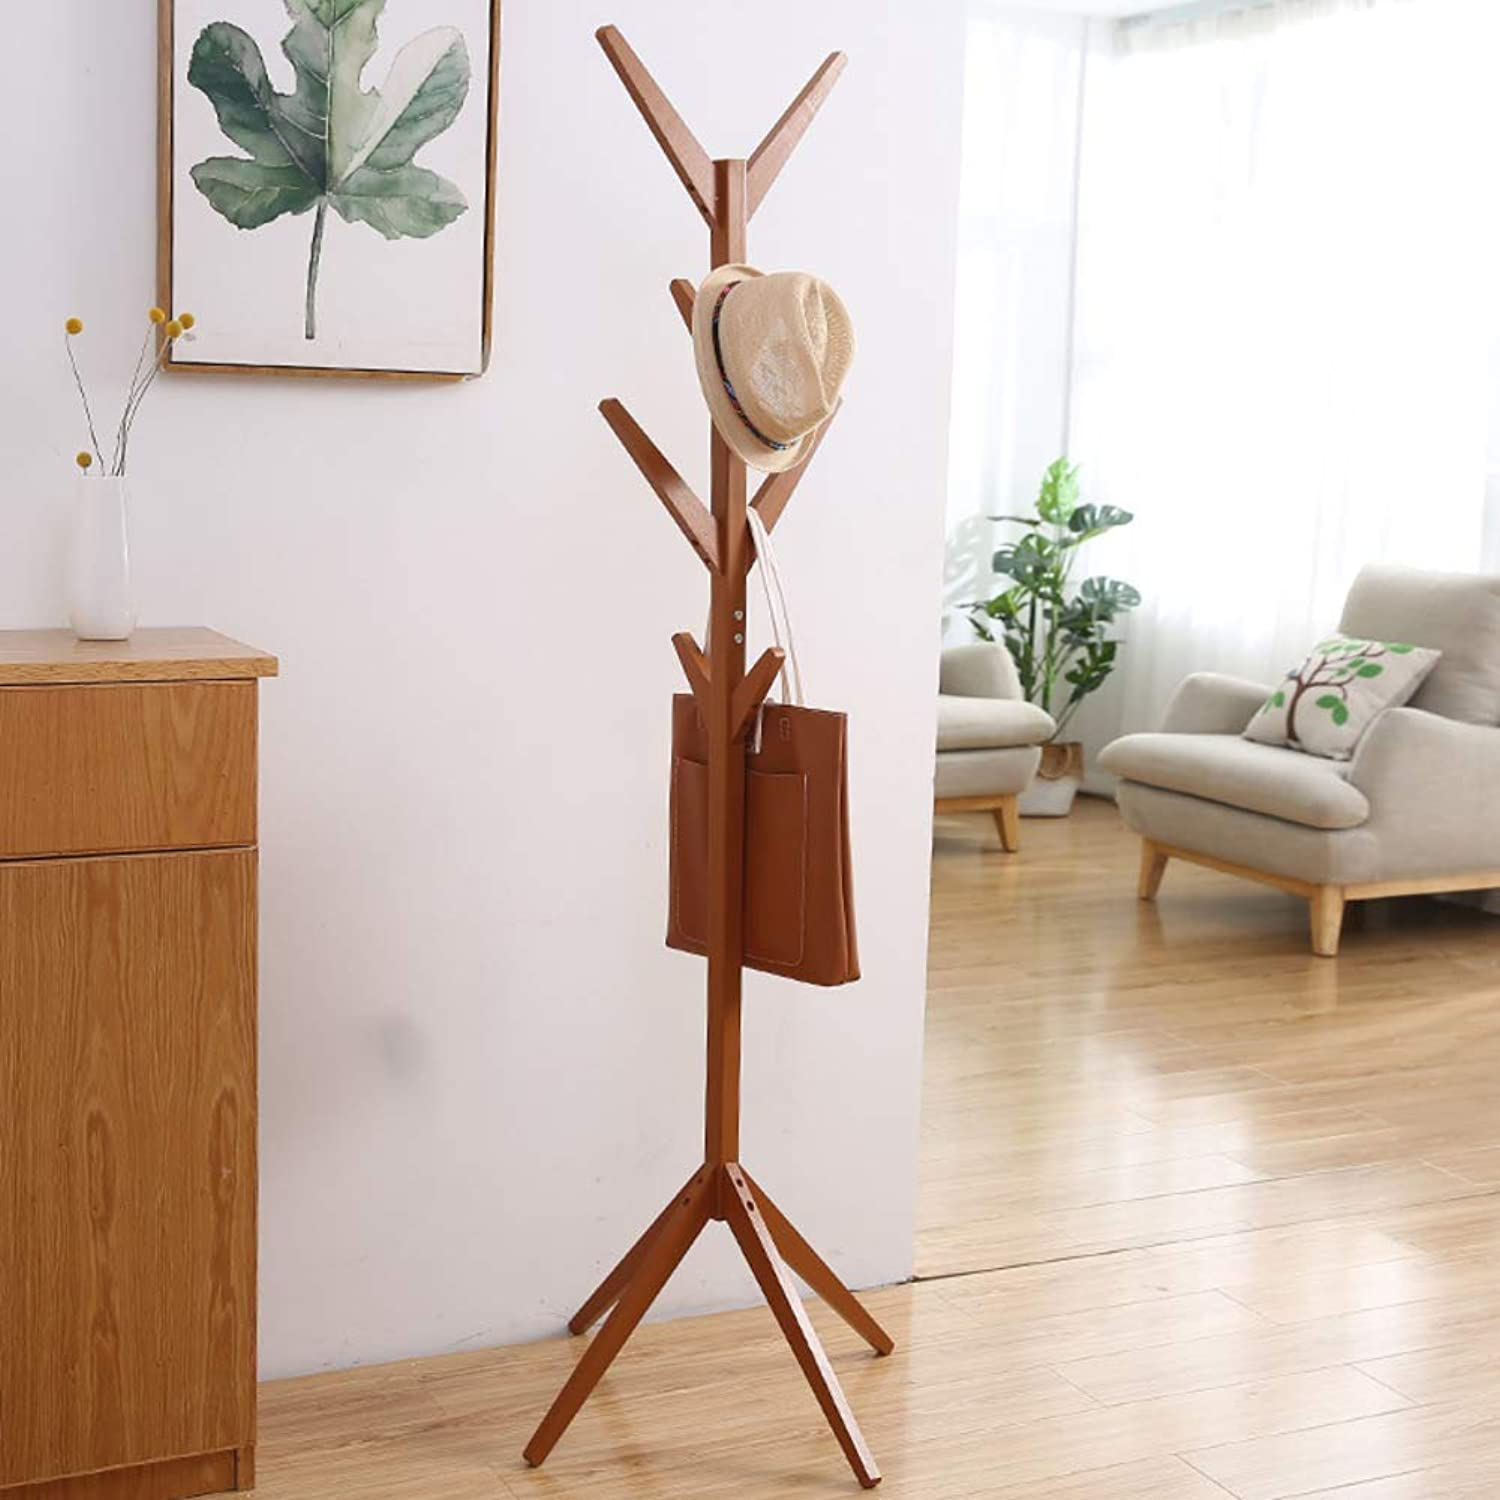 Coat Rack Tree-Shaped Hat Hanger Holder Solid Wood Garment Stand Hooks Wooden Coat hat Rack Stand for Clothes Scarves and Hats-B 45x45x175cm